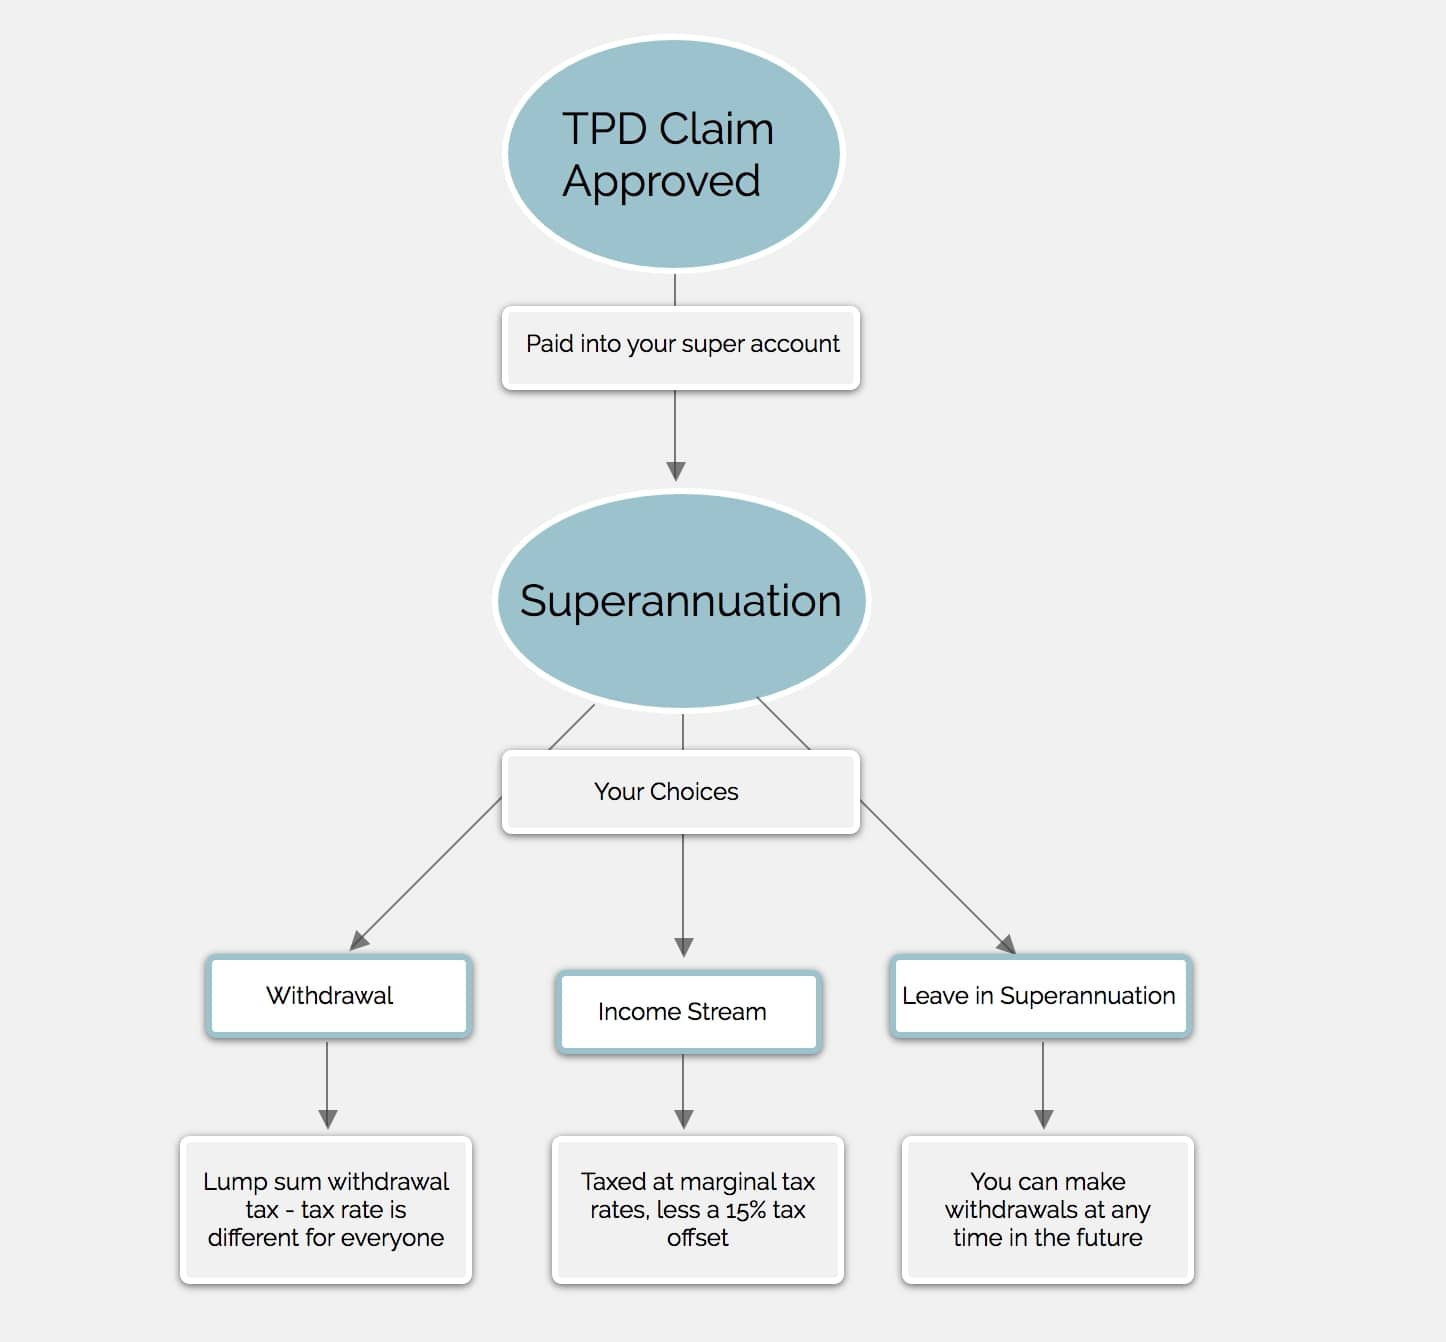 tpd-claims-superannuation